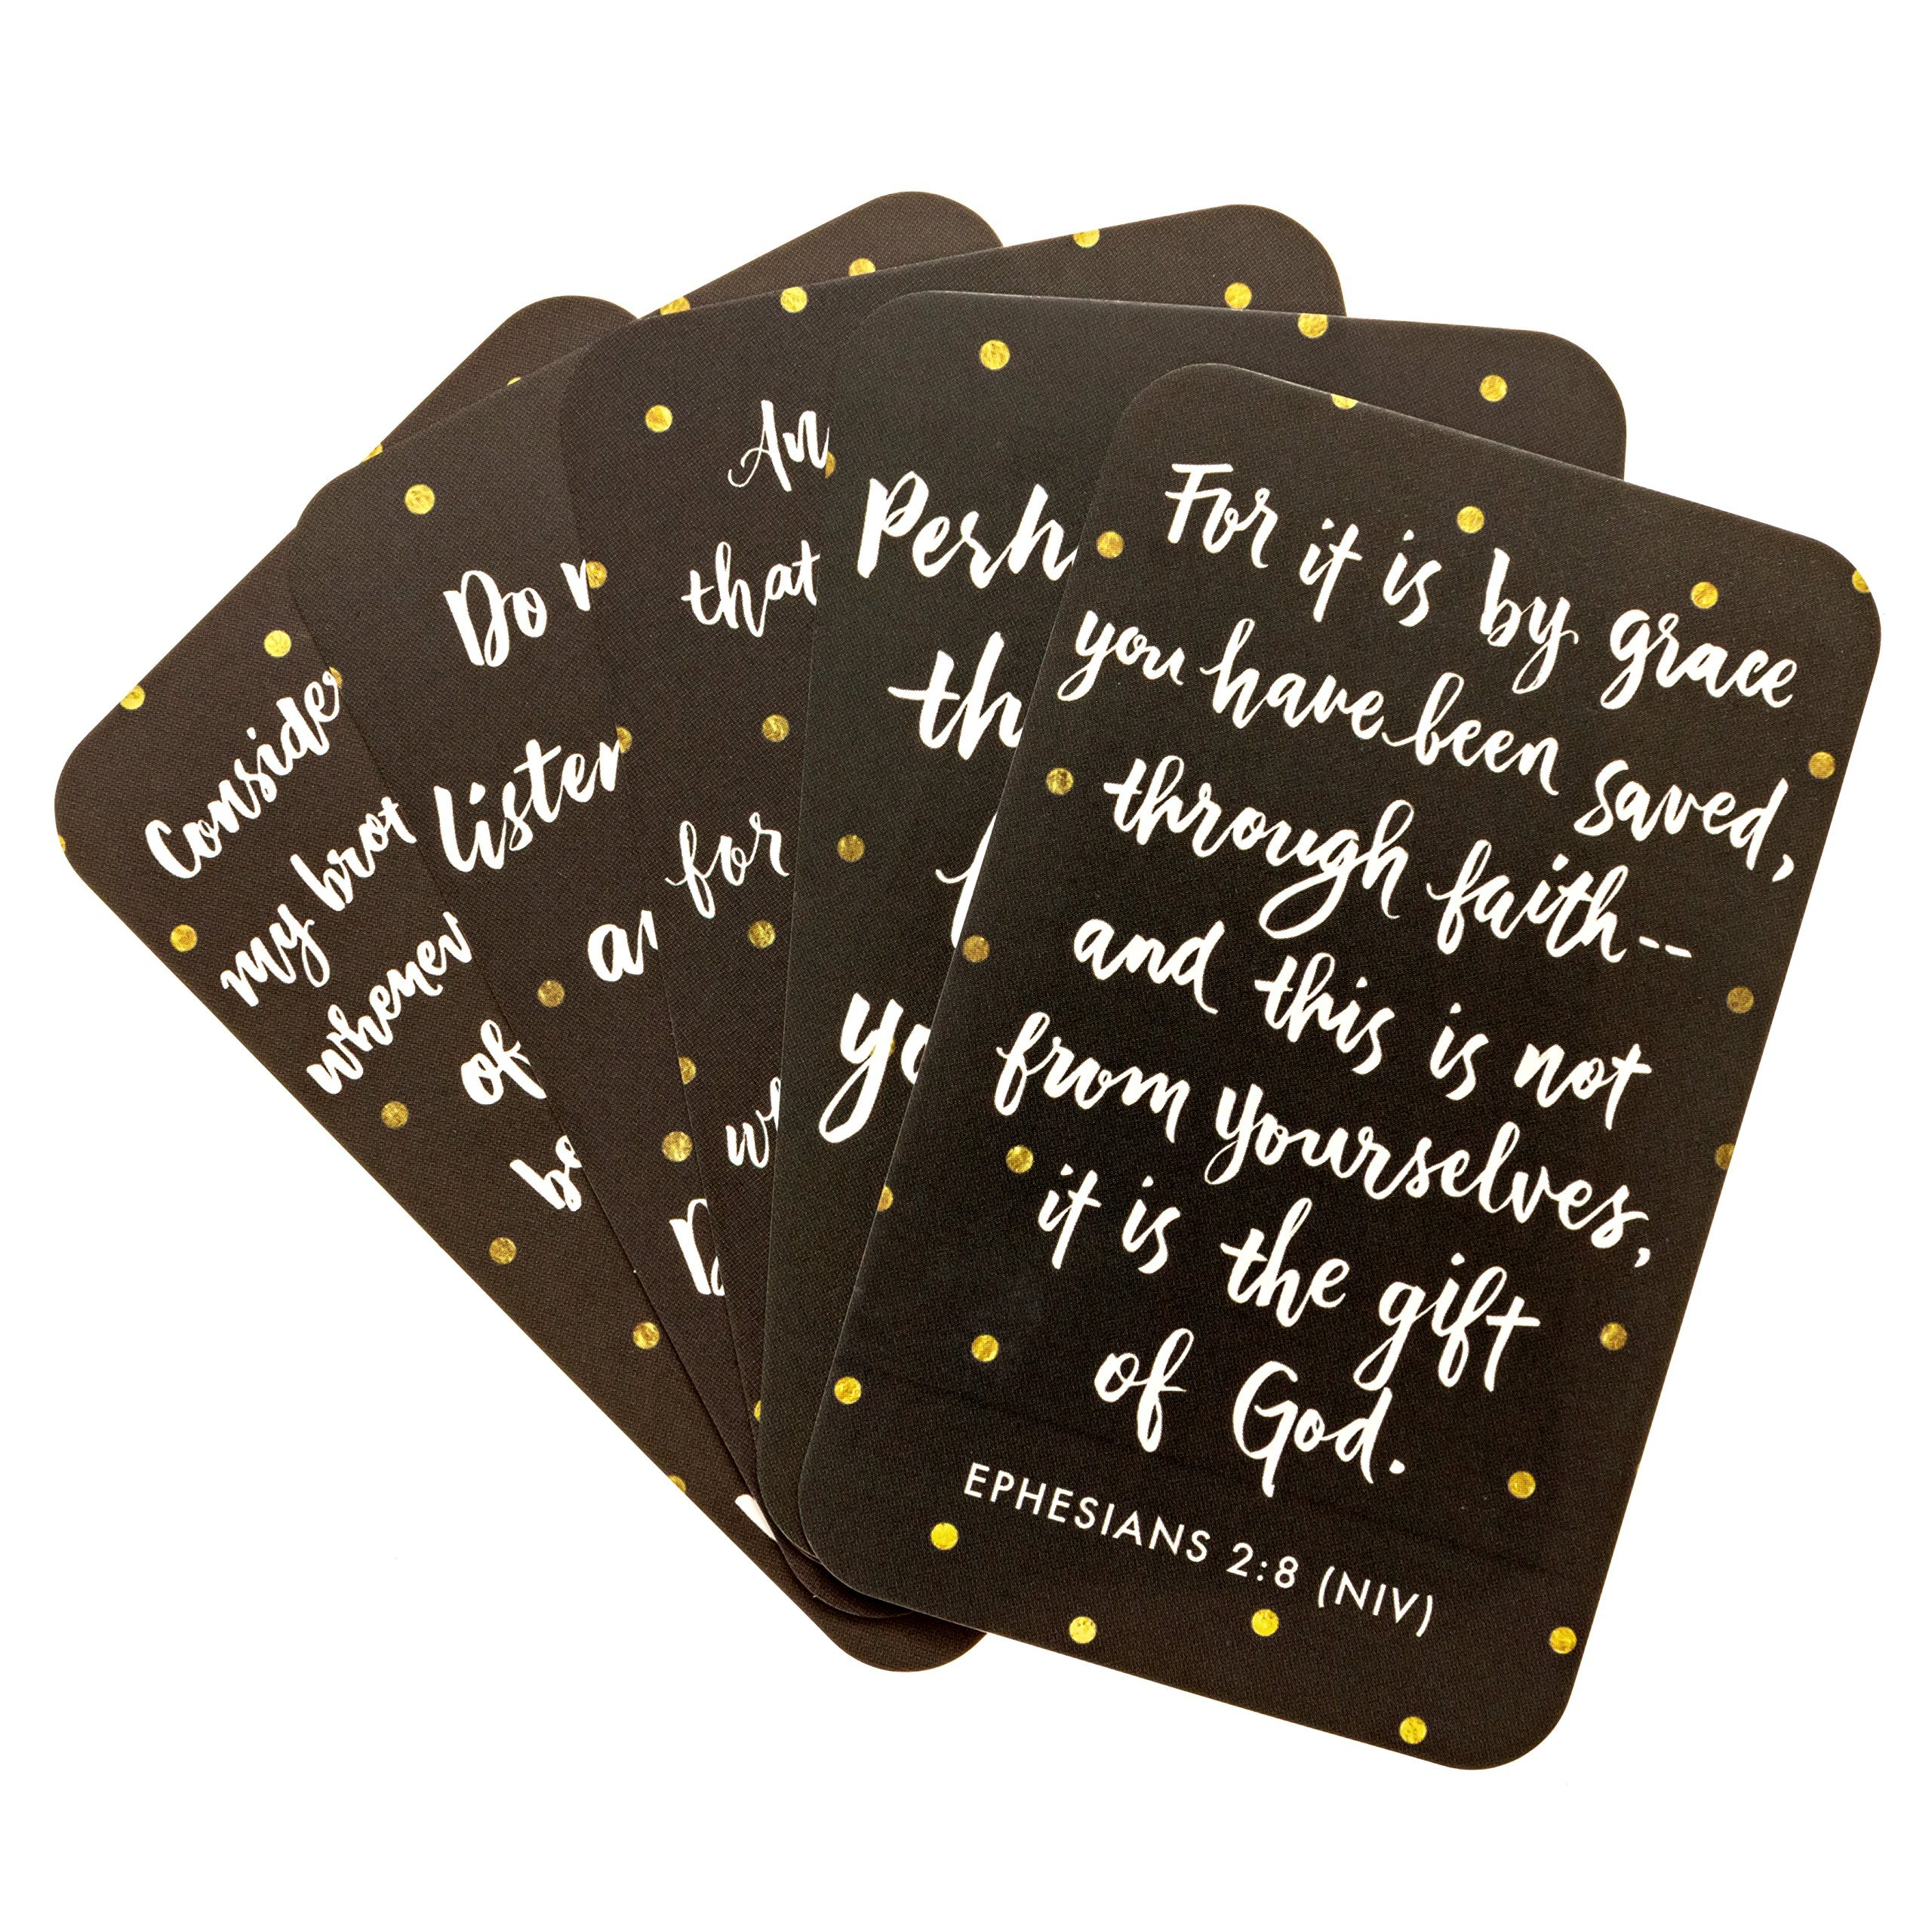 JennyM | Verses to Live By - 25 Bible Verses Inspirational Prayer Cards, Memory Verse of the Day Scripture Cards with Keepsake Box, Boxed Inspirational Blessing Cards, Christian Gift by JennyM (Image #3)